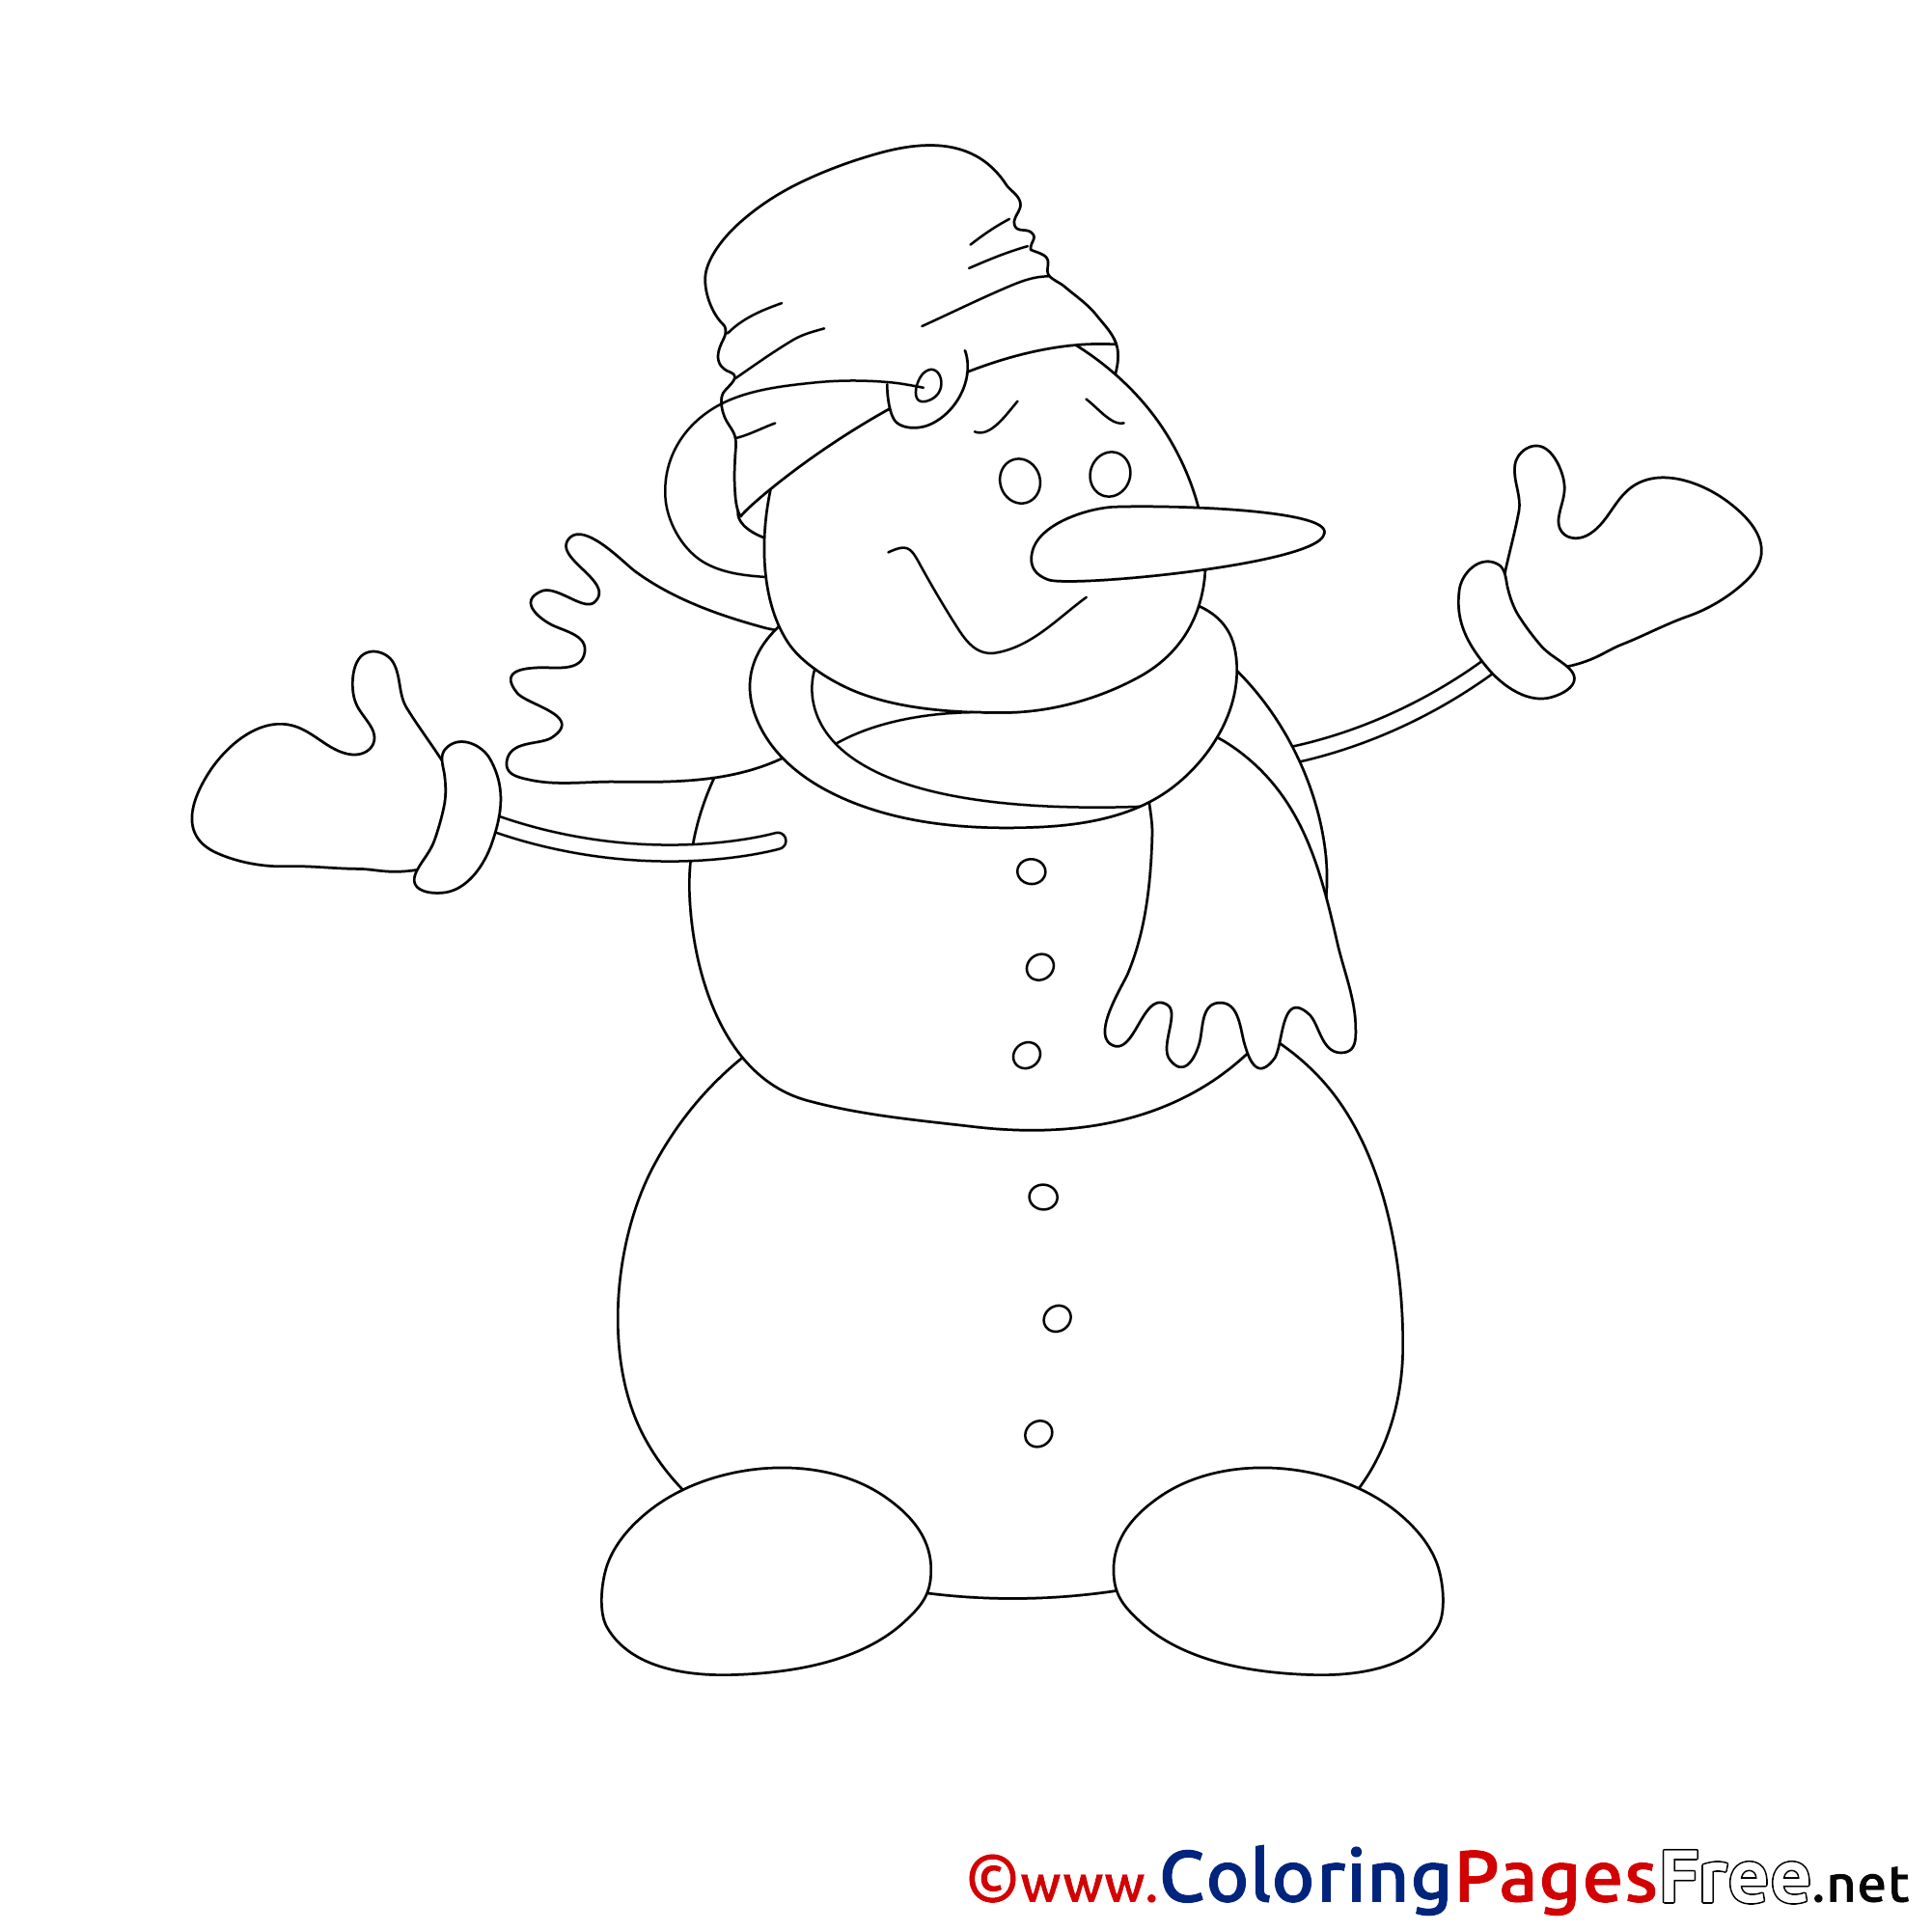 Free Snowman Coloring Page, Download Free Clip Art, Free Clip Art ... | 2001x2002